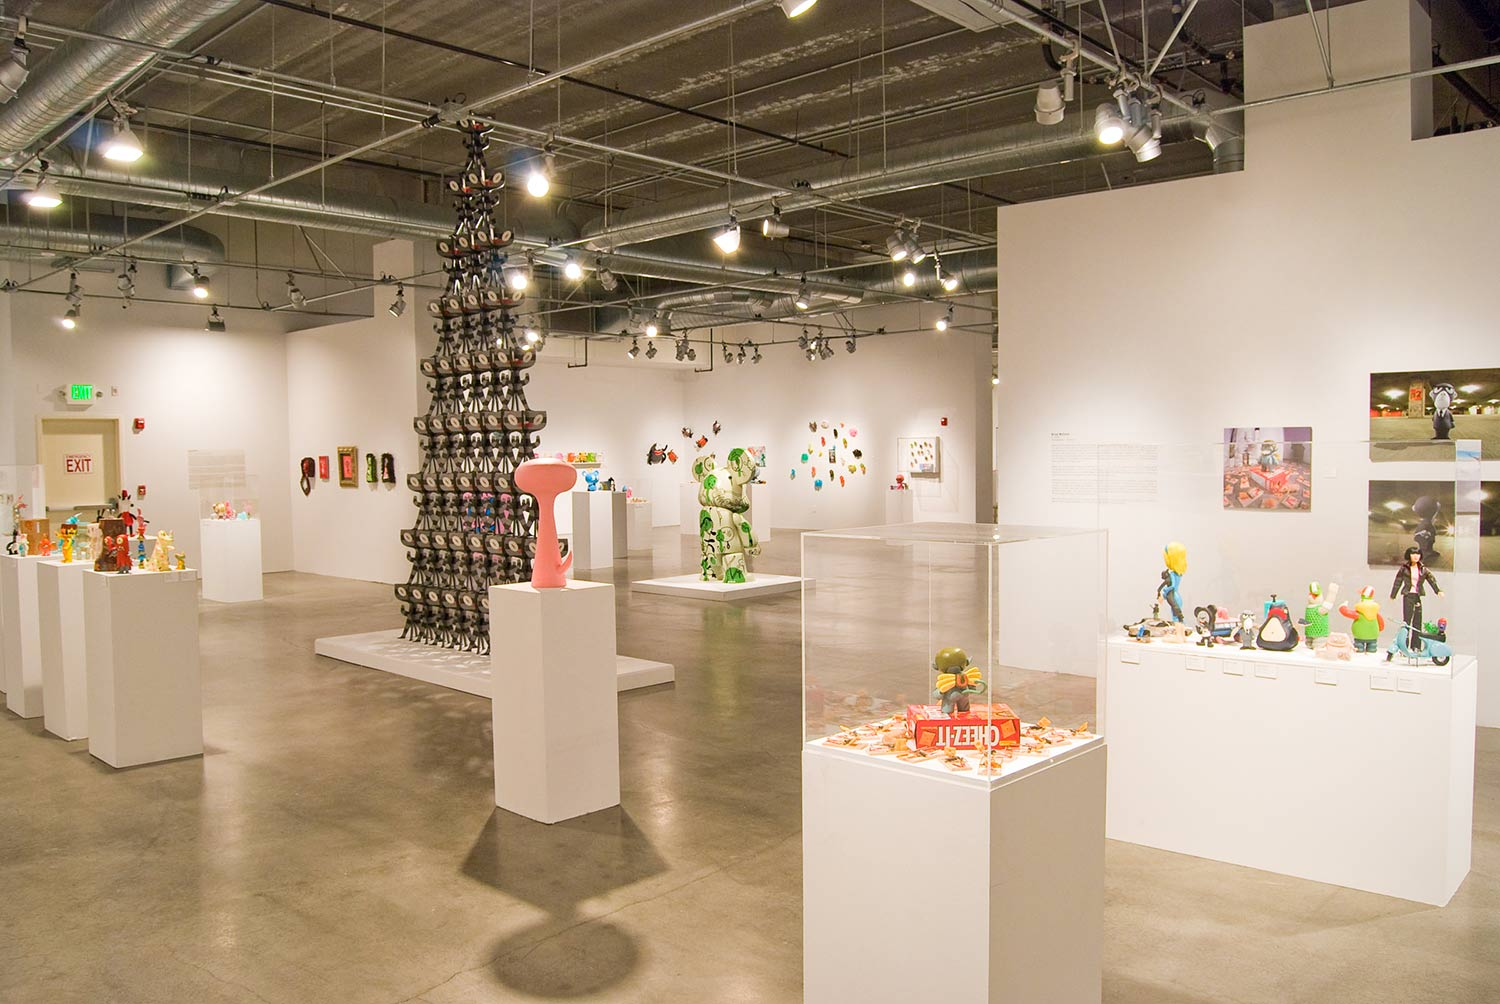 INSTALLATION VIEW: THE SOUTHEAST CORNER OF THE PMCA MAIN GALLERY